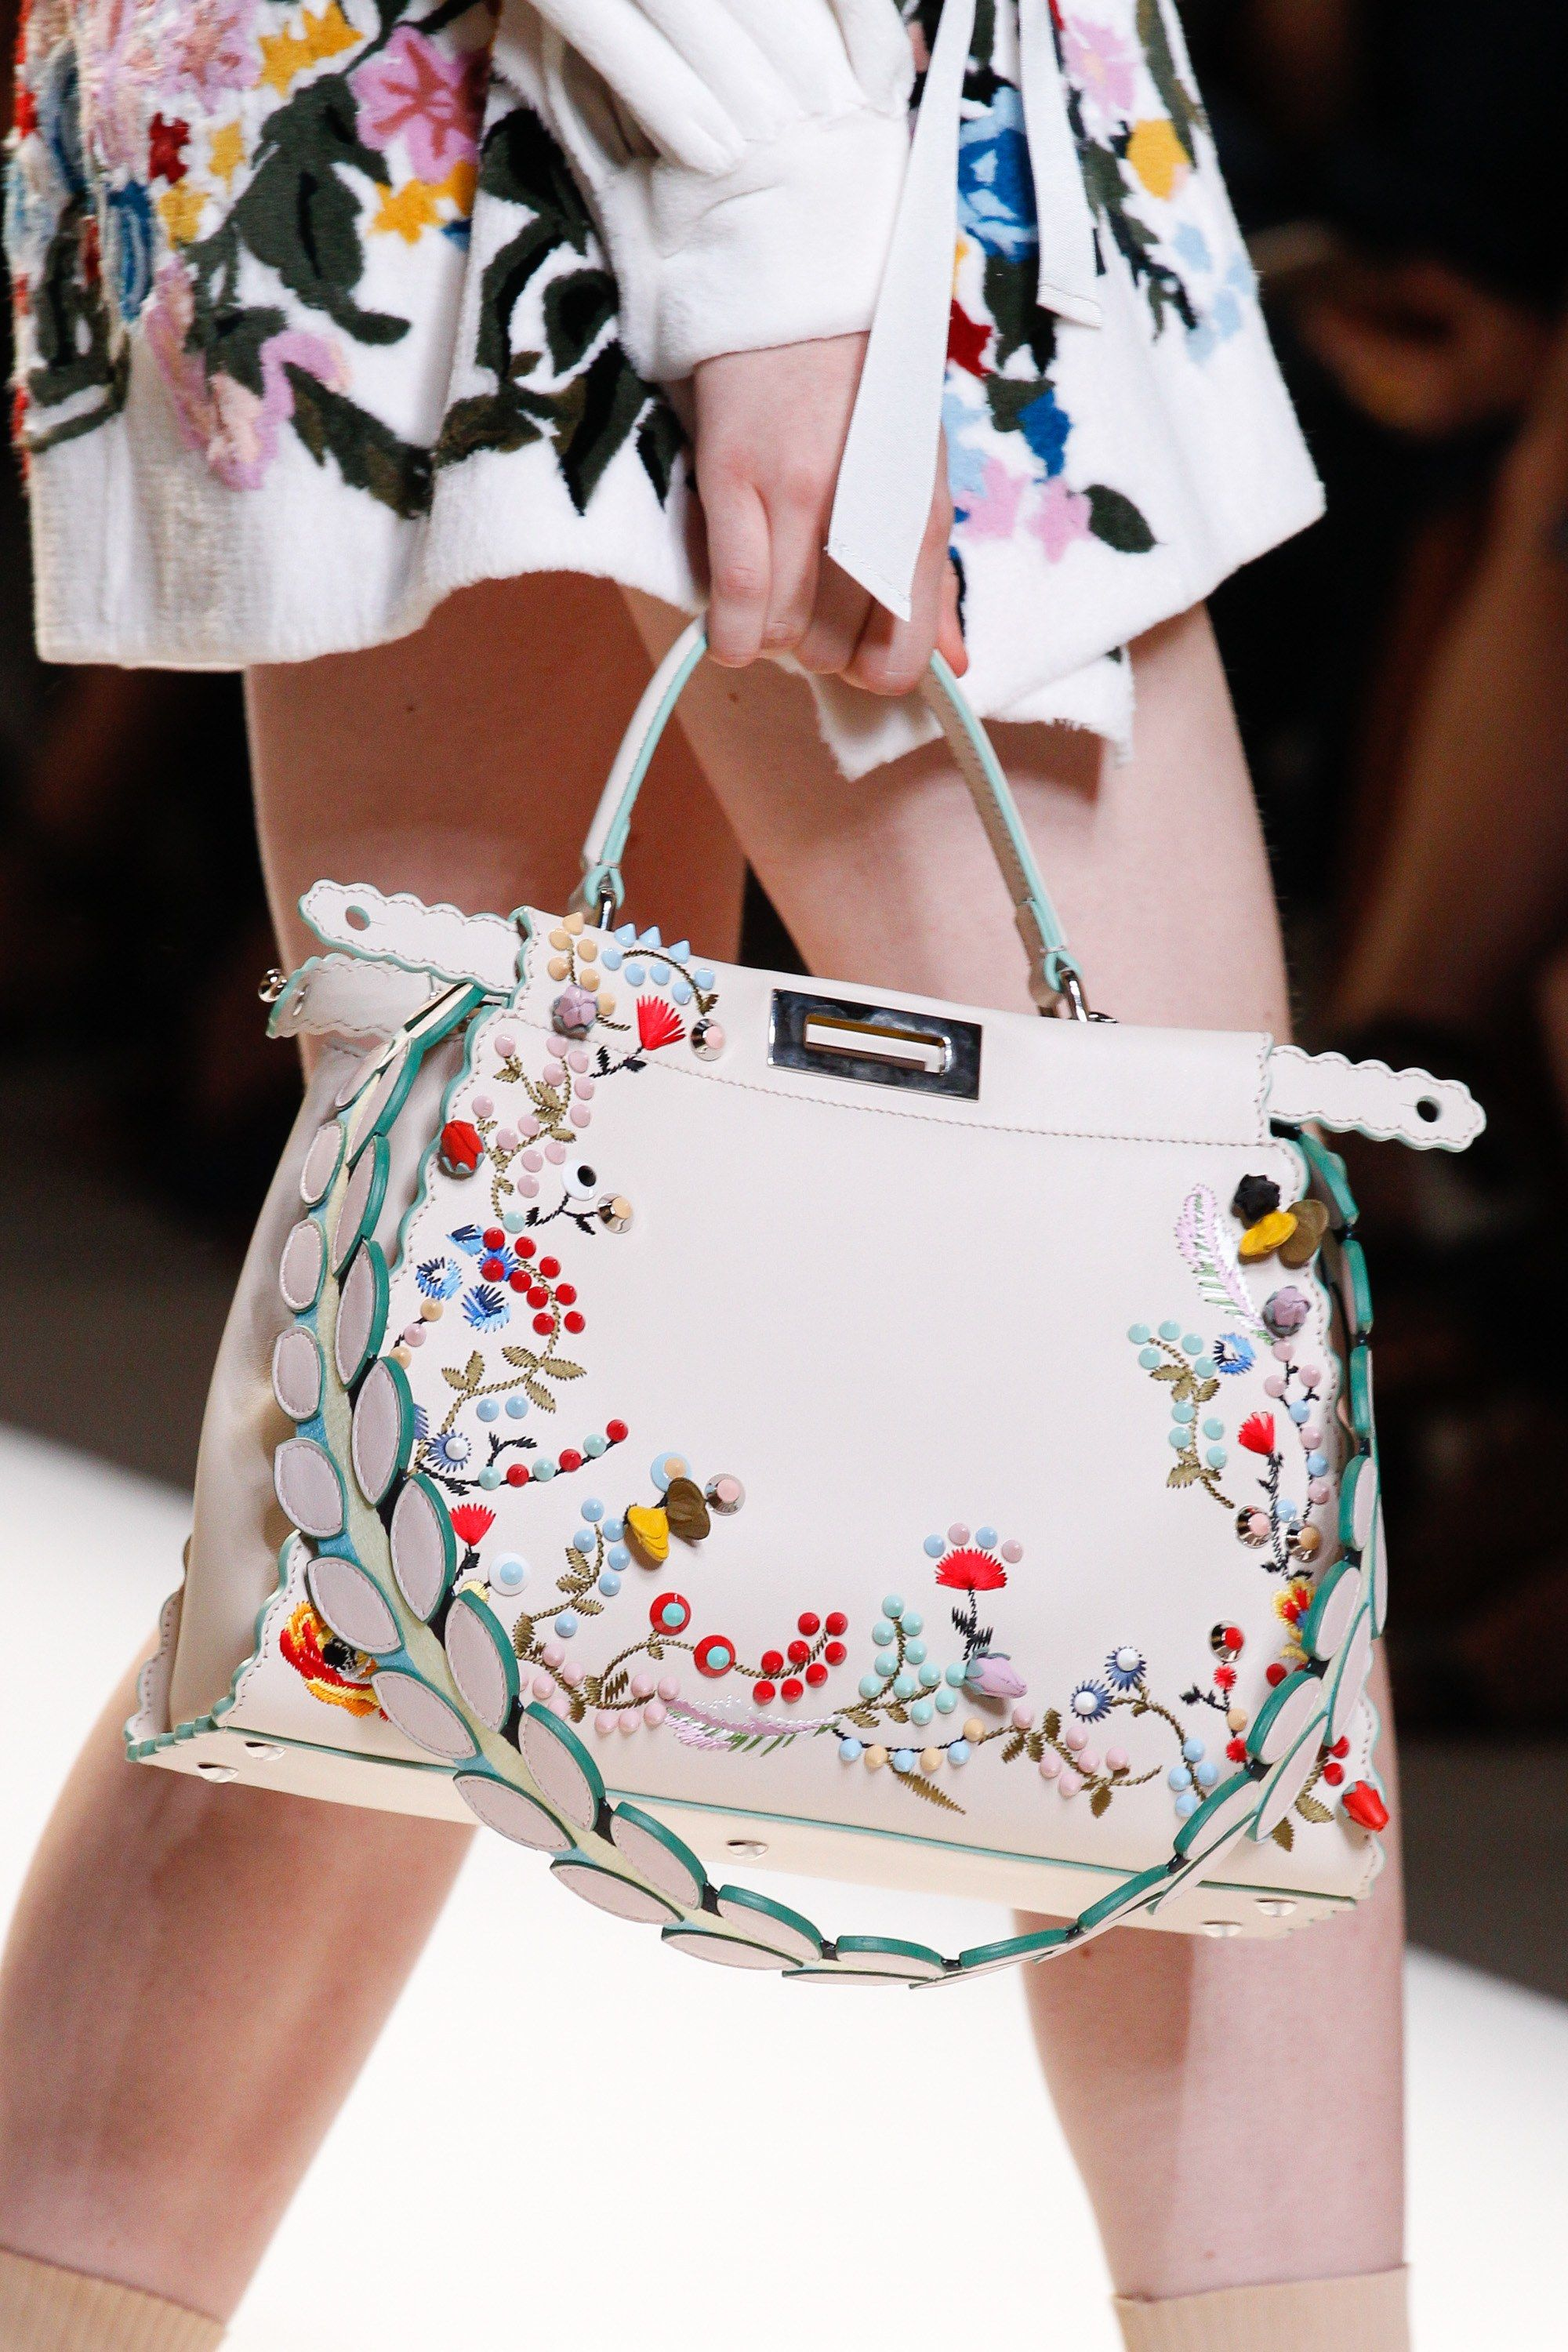 7c81eee3c43 Fashion Express: Floral Bag By Fendi SS 2017 Bags #fashion #bags #designs